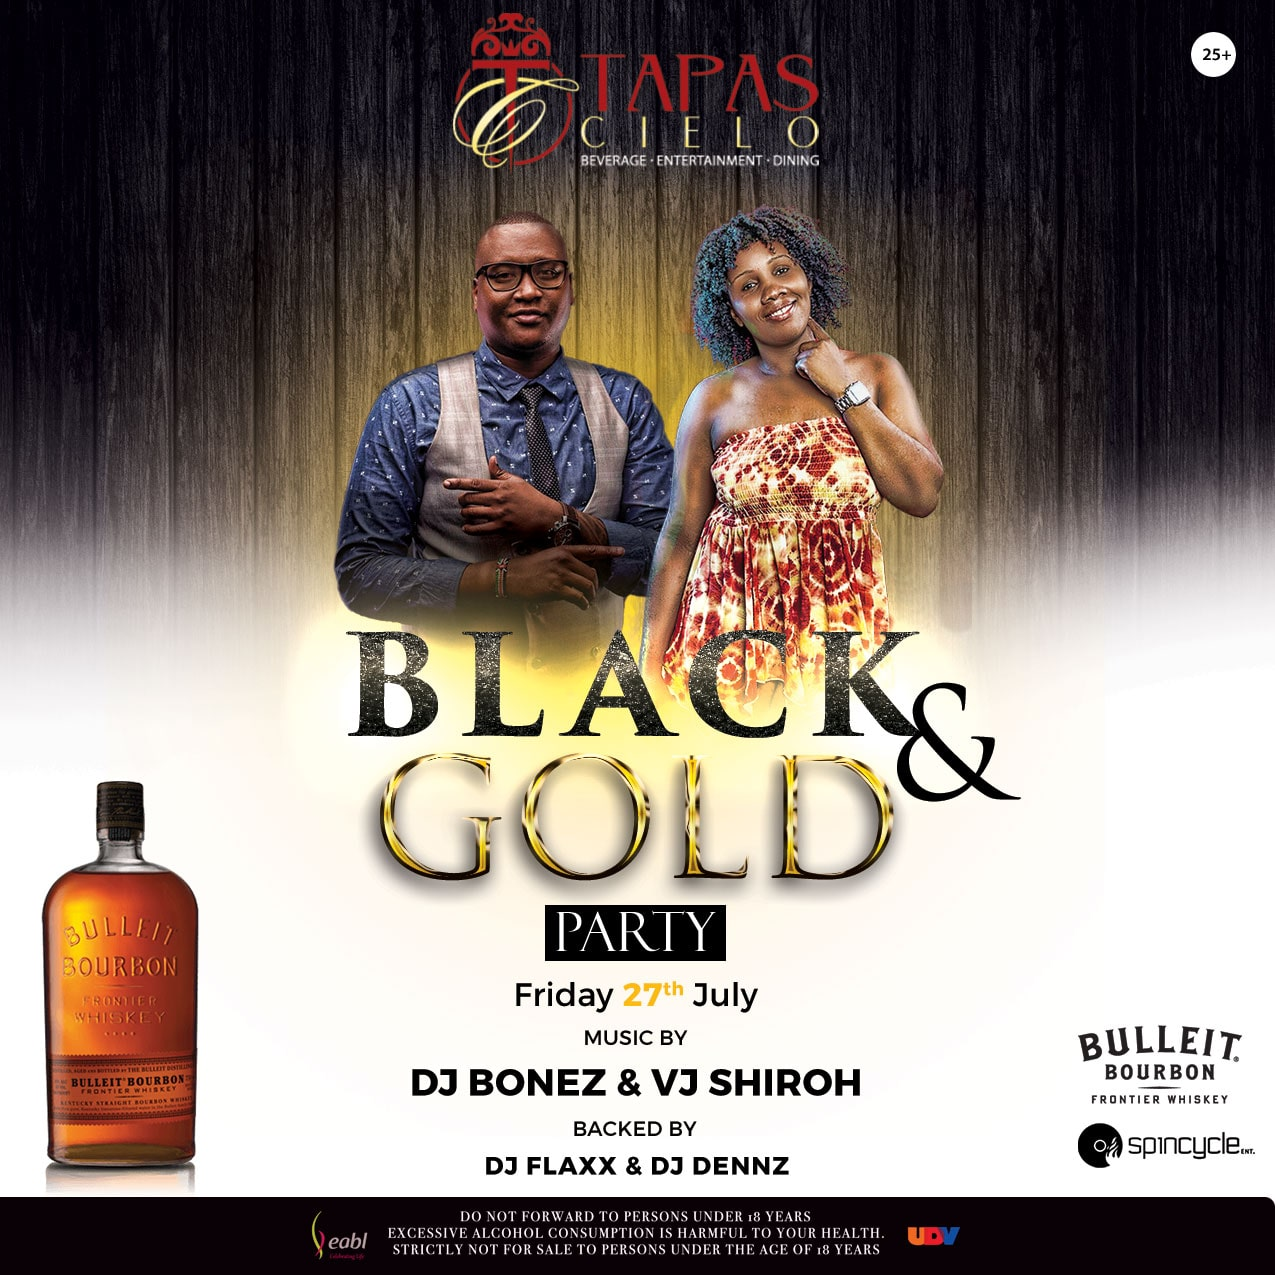 BLACK-&-GOLD-PA-RTY-27TH-JULY-min